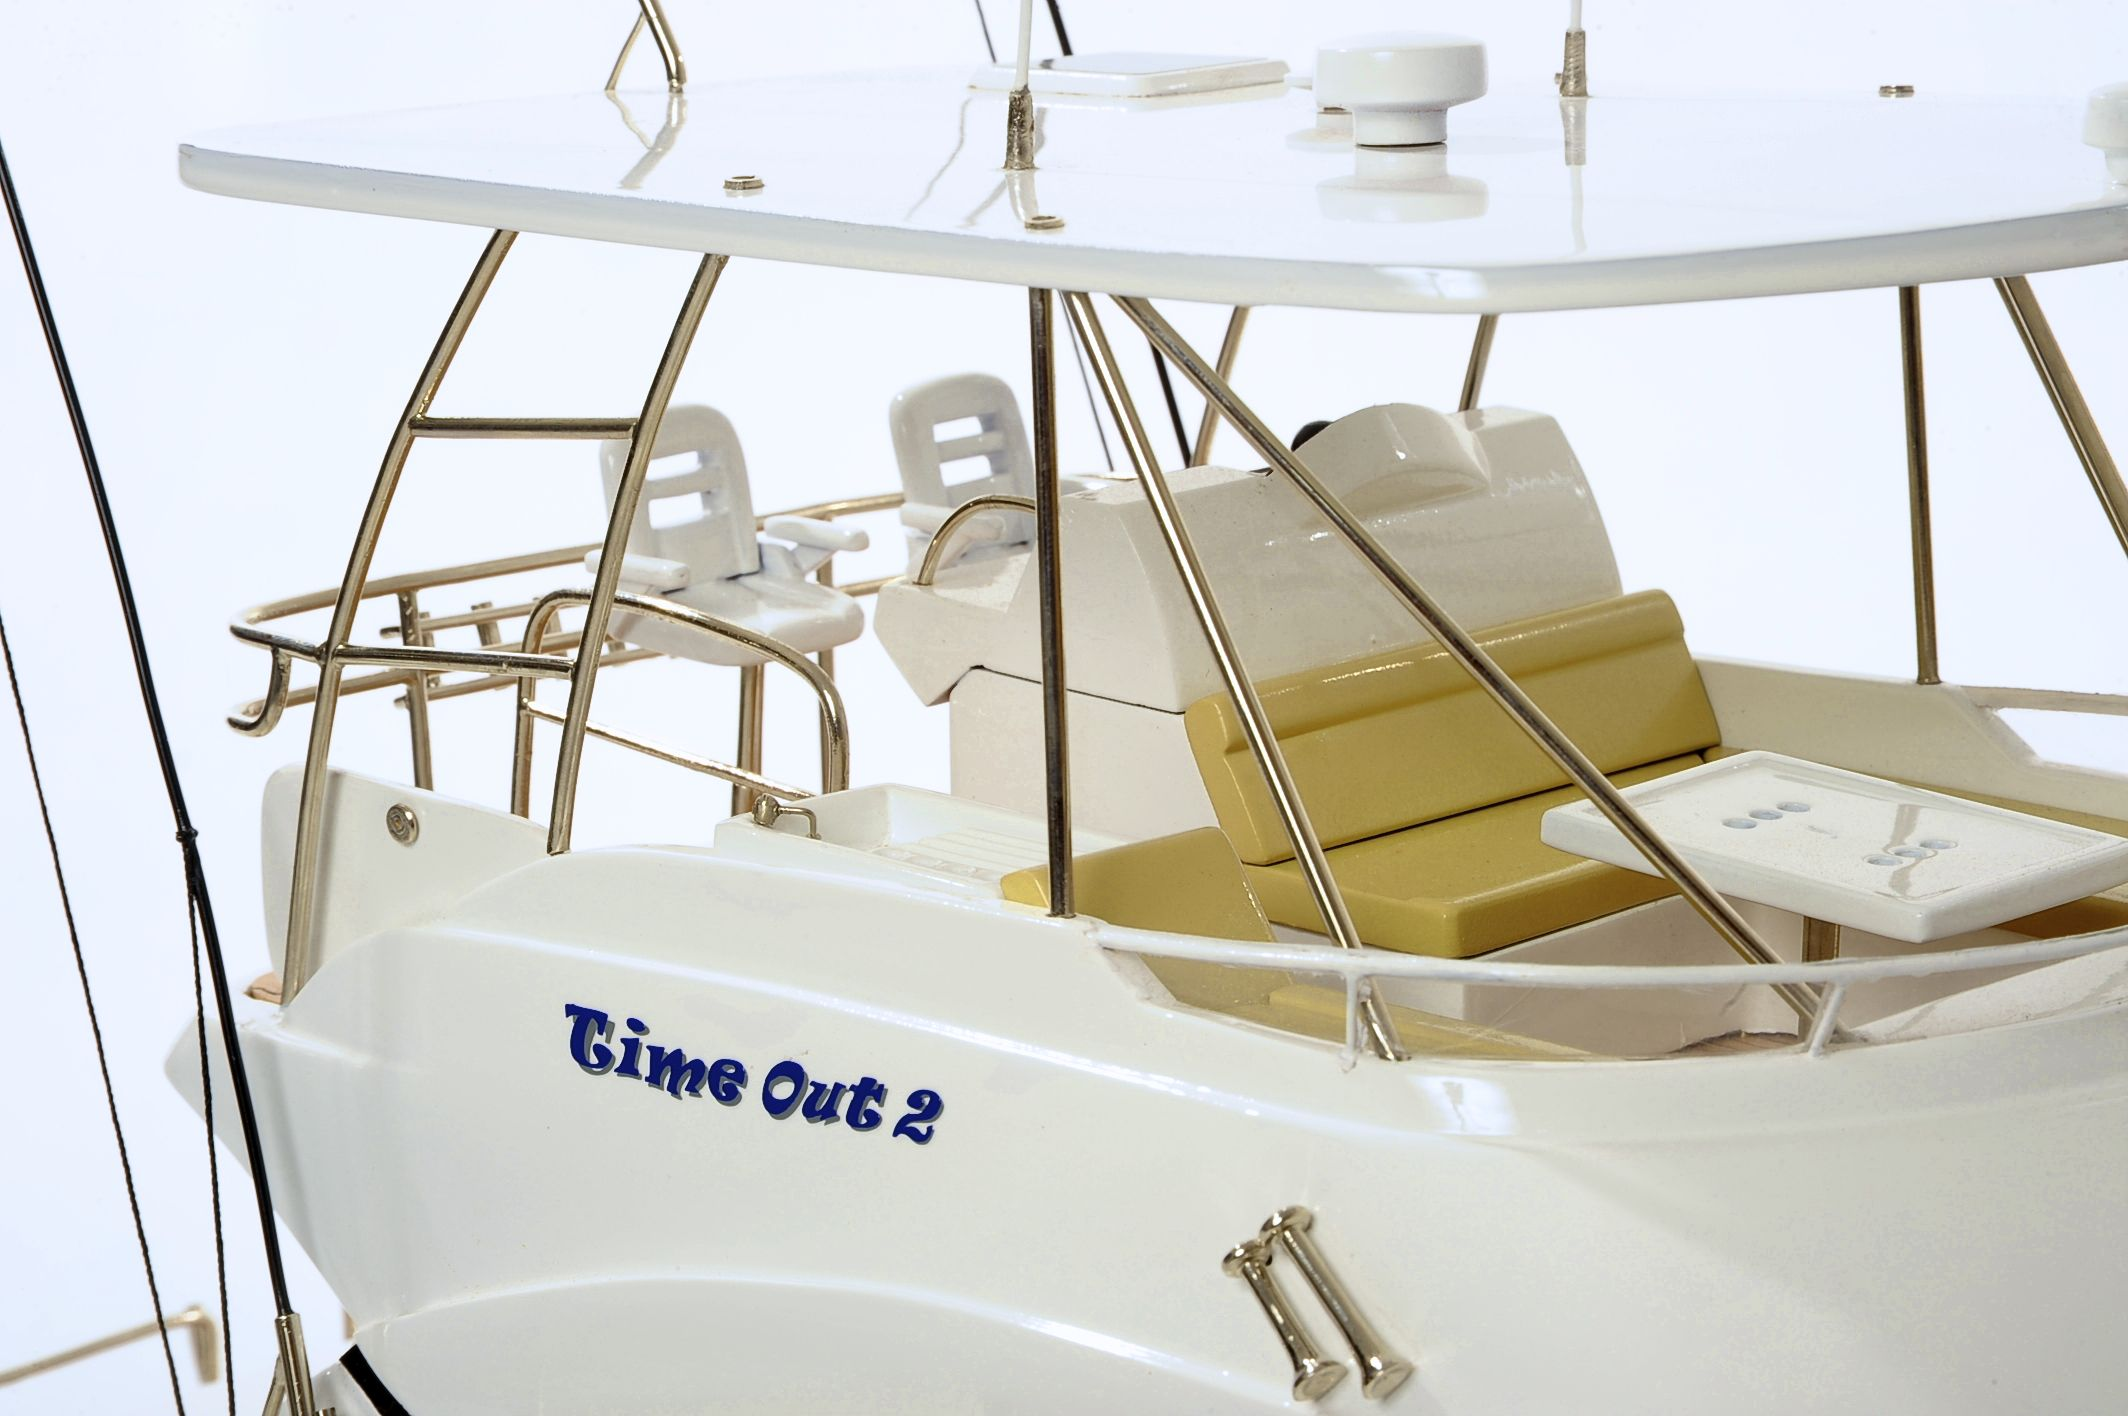 1517-8960-Rivera-45-Model-Boat-Time-Out-2